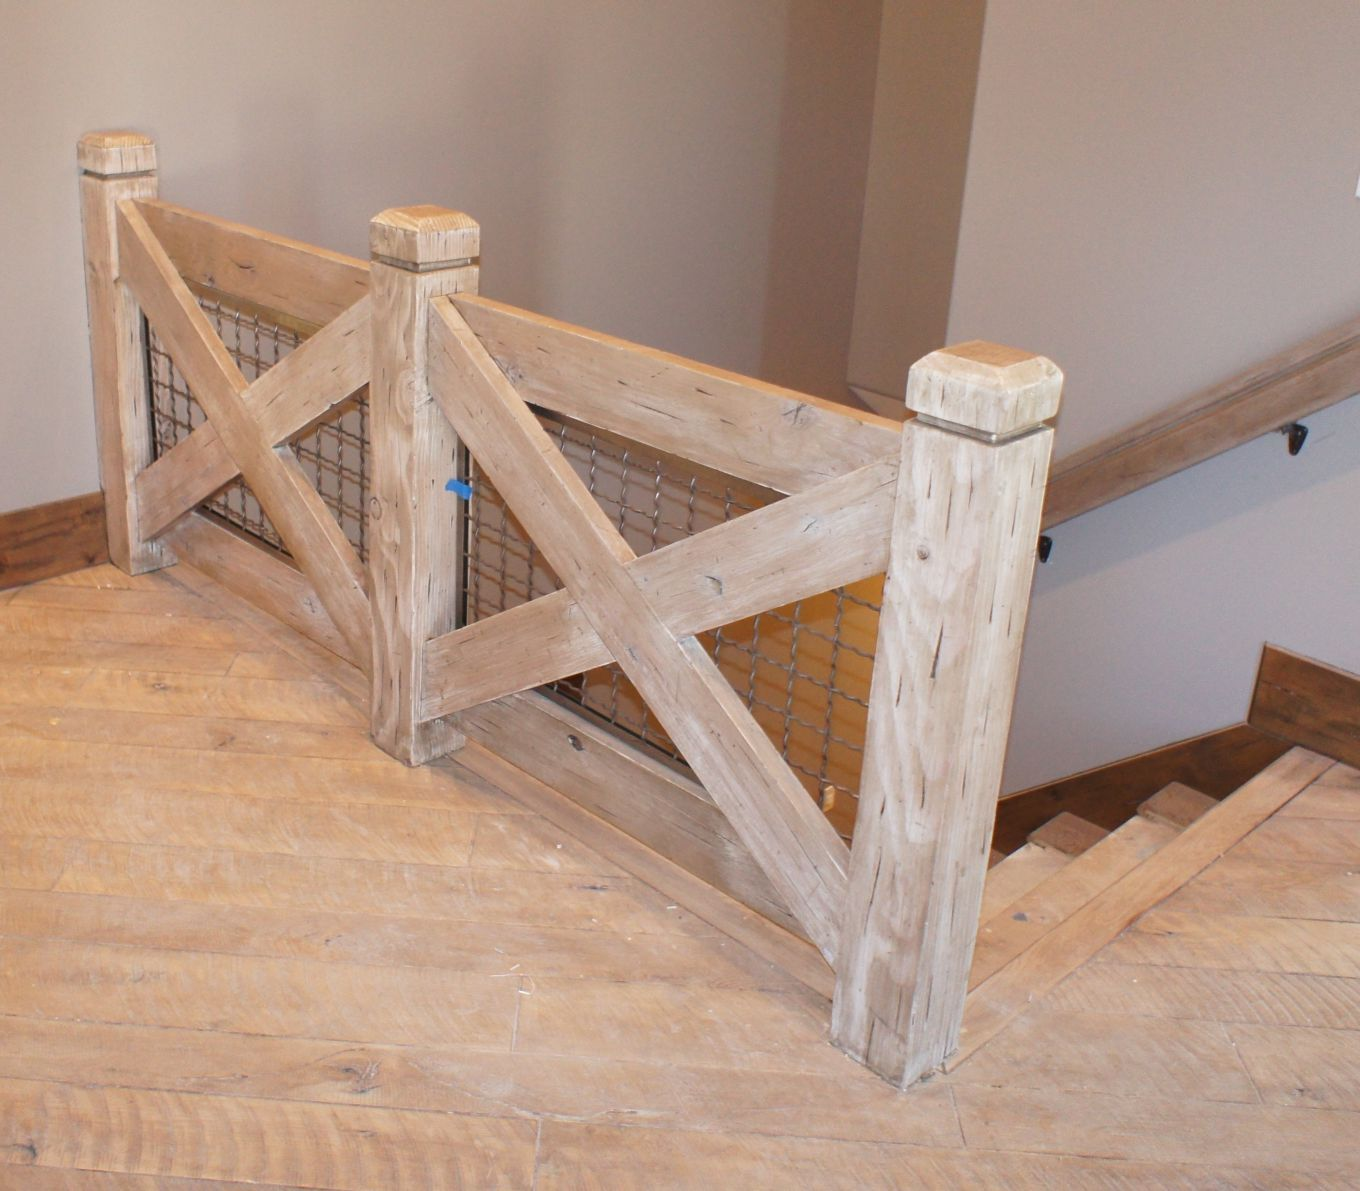 how to build railings at the top of the staircase - Google Search